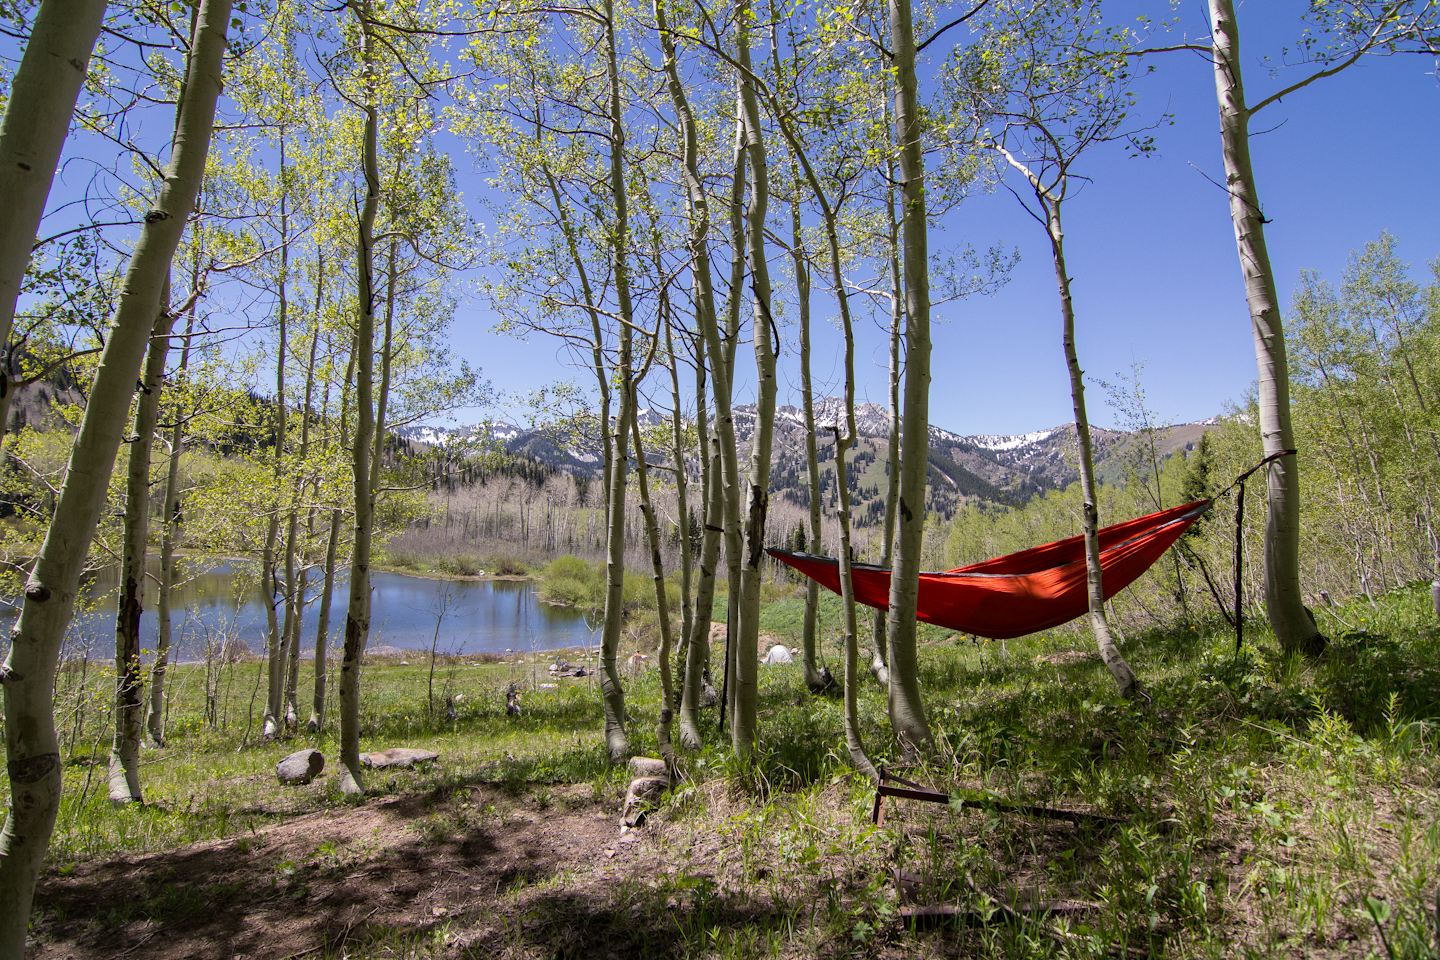 Gear Review Eno Double Nest Hammock With Profly  The Kid. Ideas For Corner Kitchen Cabinets. Kitchen Shelves Vs Cabinets. Cabinet Ideas For Kitchen. Kitchen Cabinets Replacement Cost. Kitchen Tile Backsplash Ideas With White Cabinets. Kitchen Cabinet Corner Drawers. Lift Up Kitchen Cabinet Hinges. Mdf Kitchen Cabinet